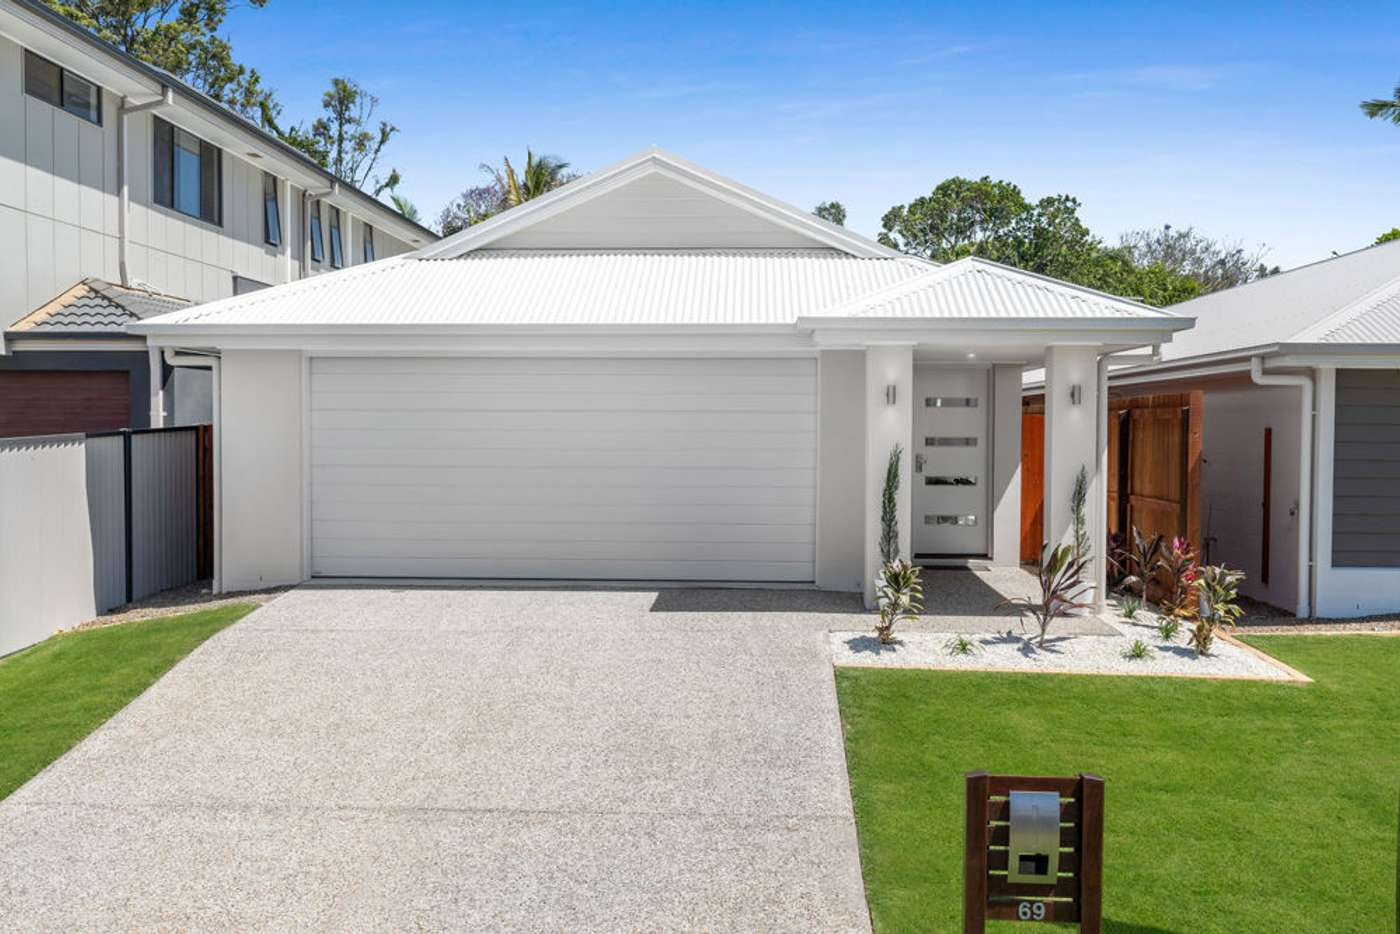 Main view of Homely house listing, 69 Hutton Aveue, Wynnum QLD 4178